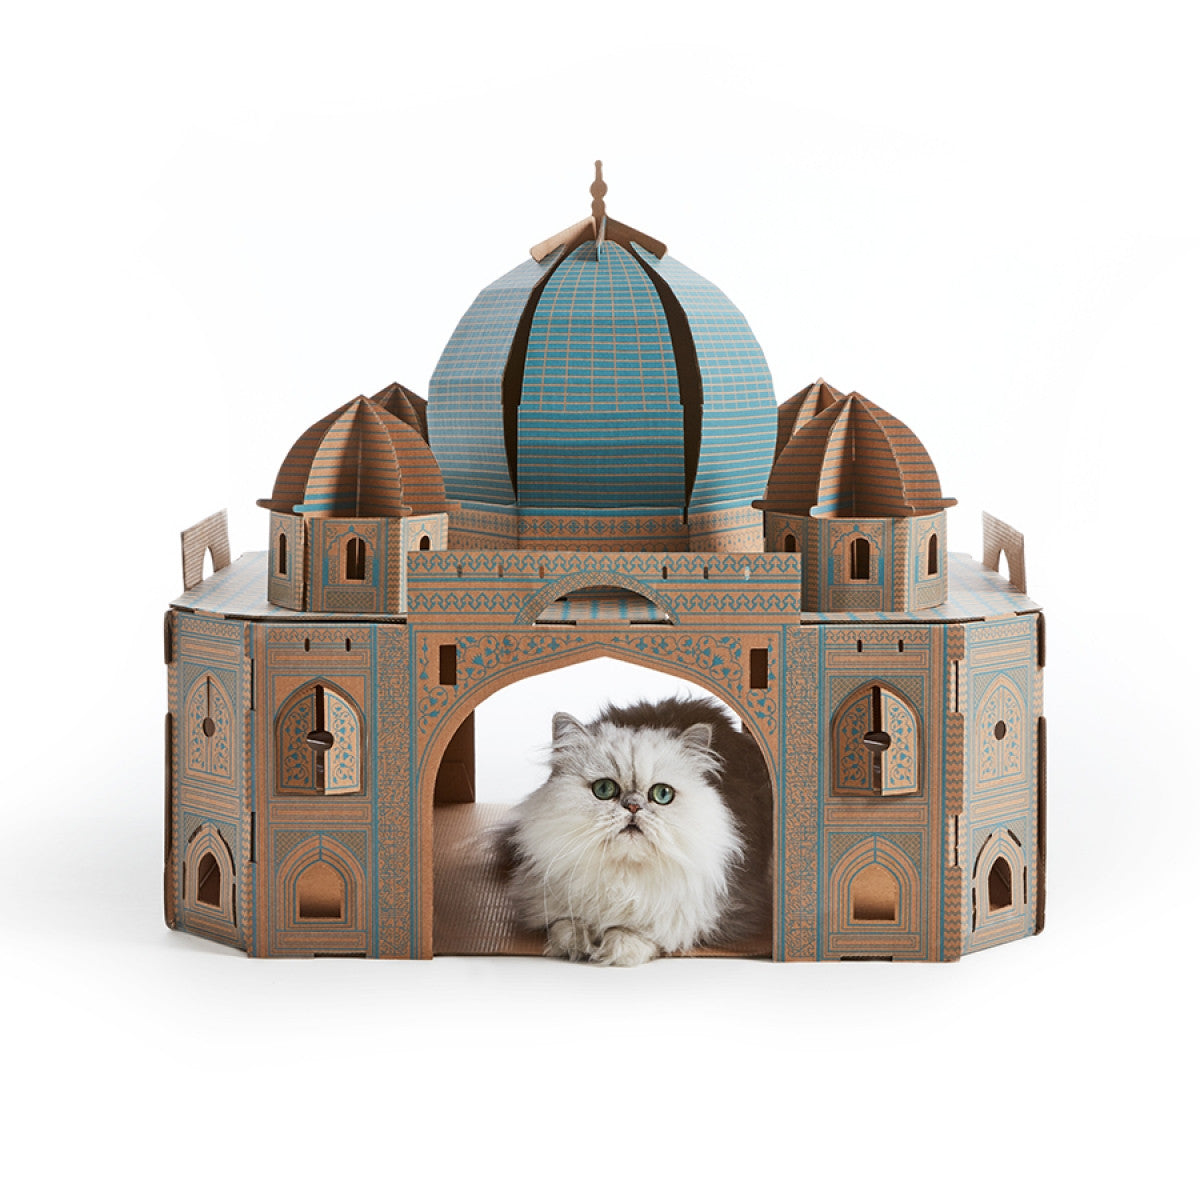 Taj Mahal Cat cardboard house